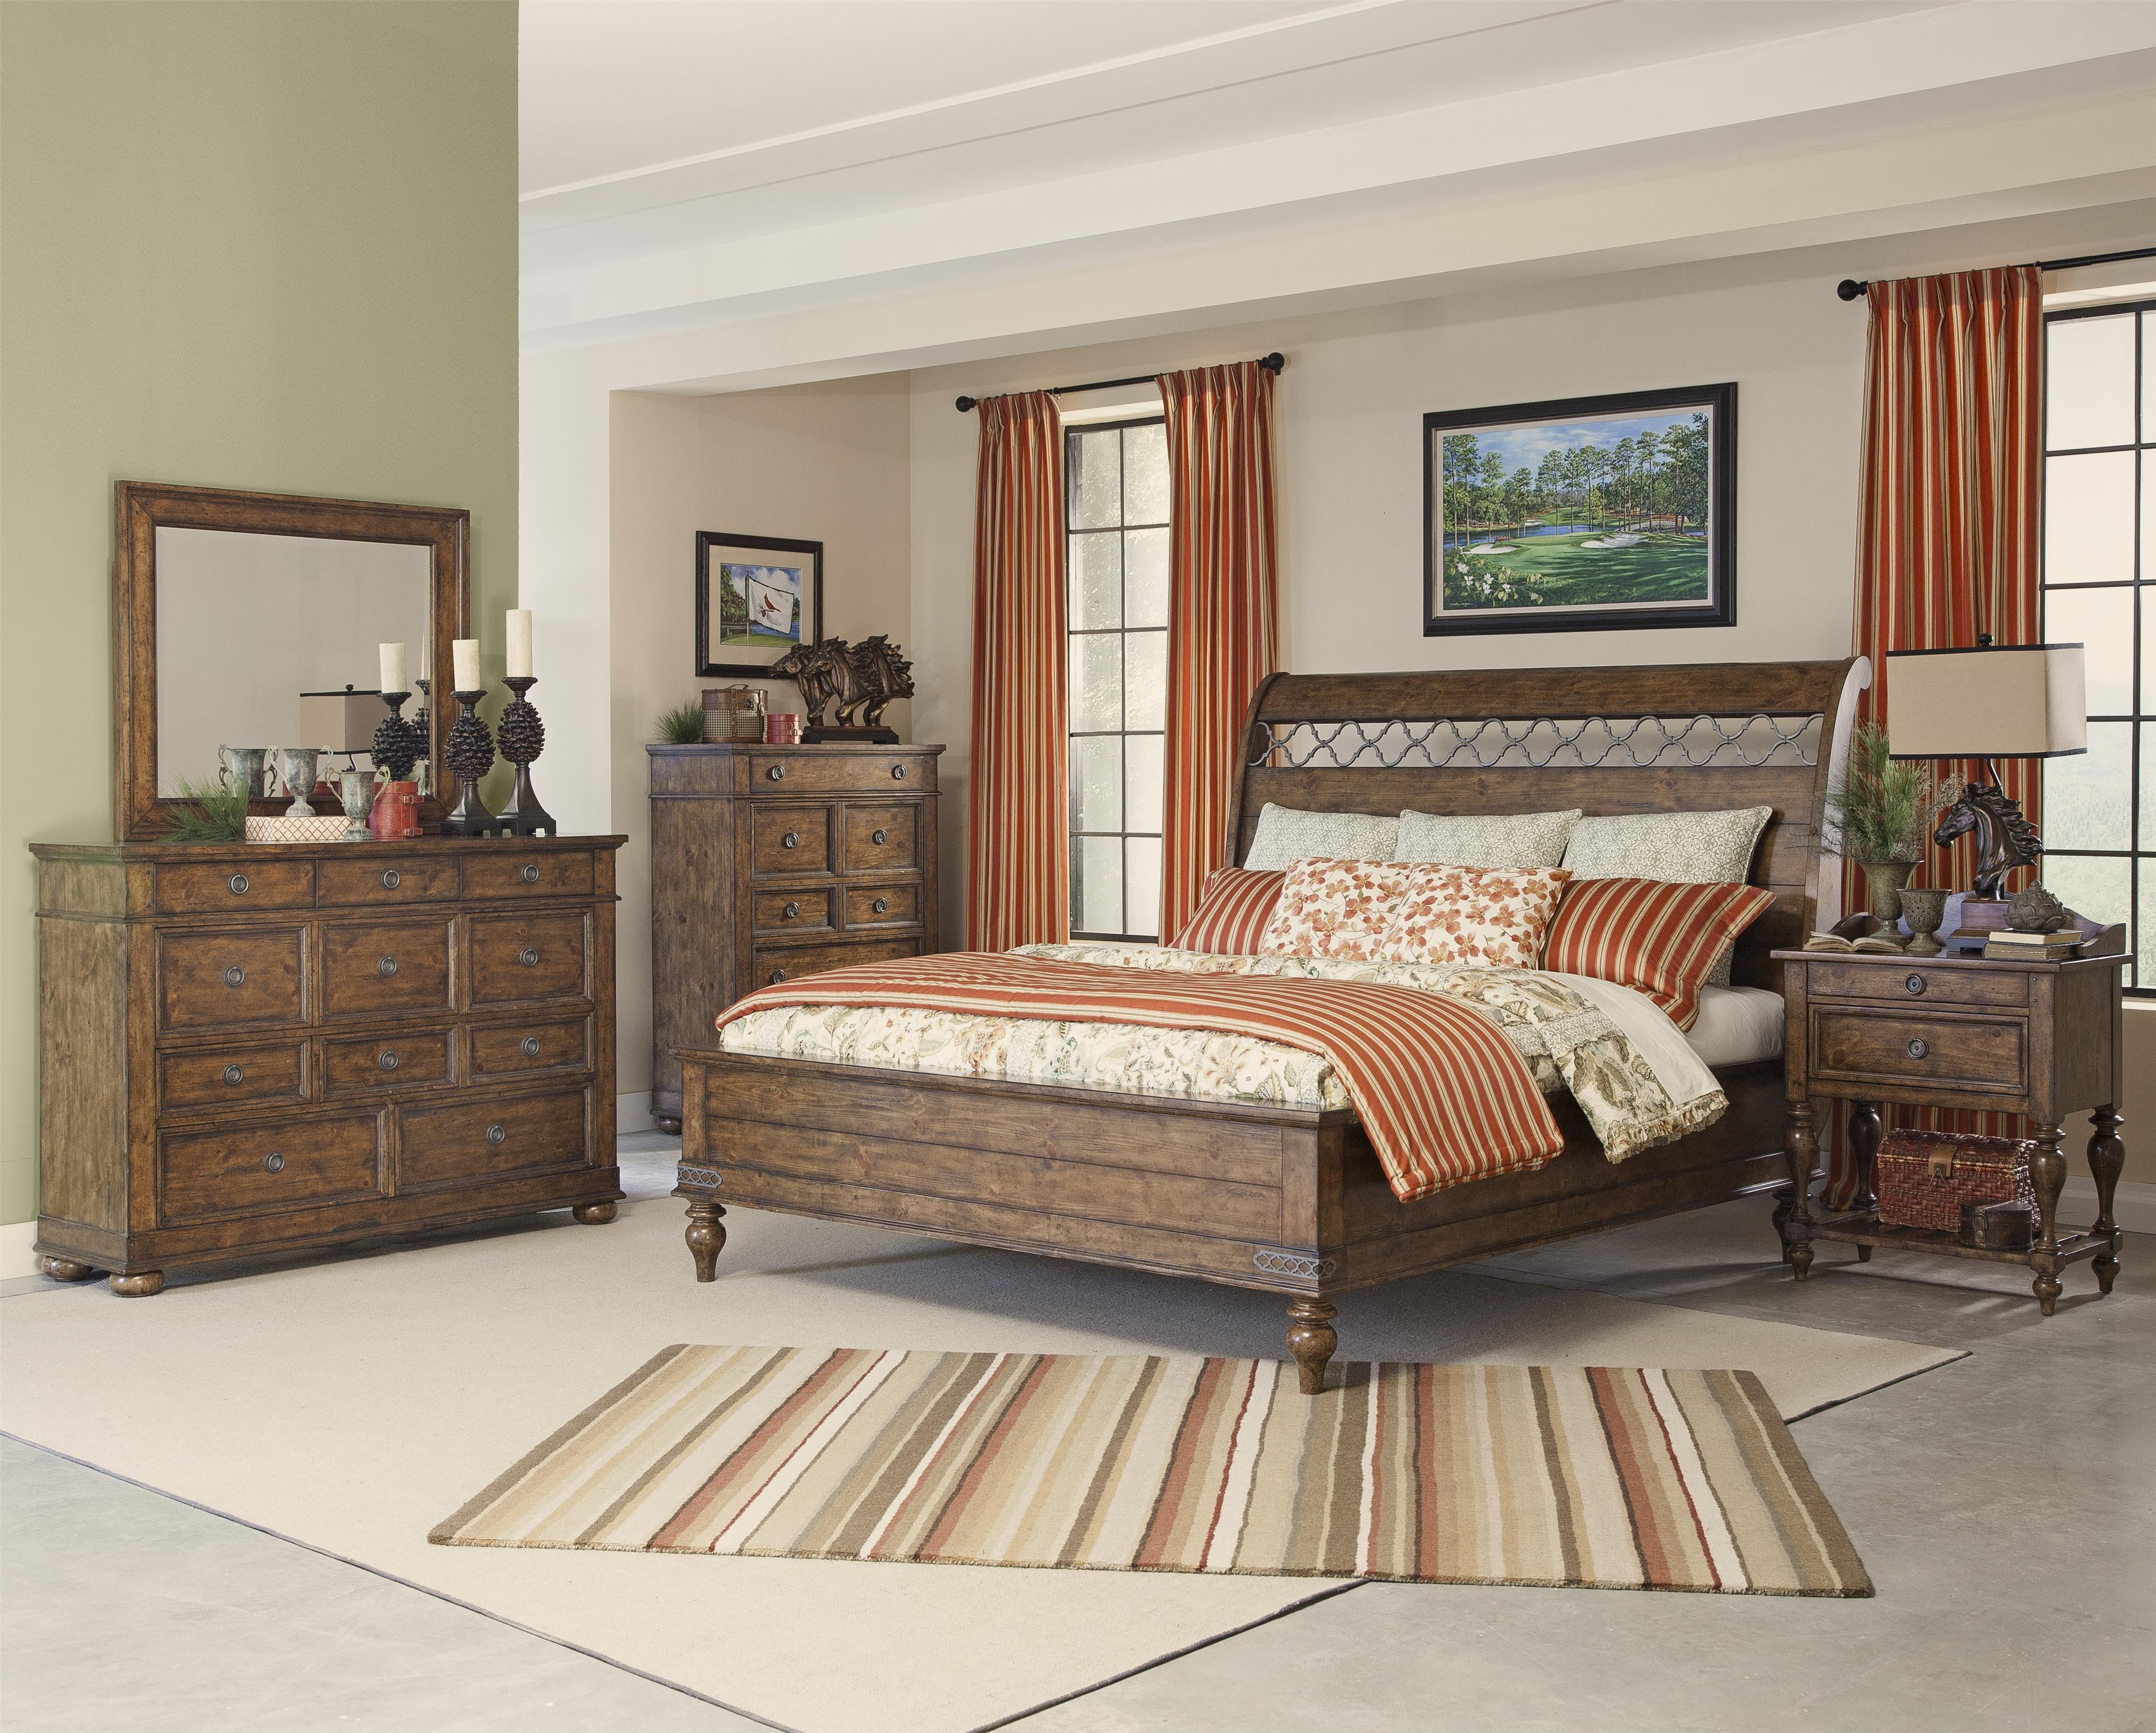 Do You Like Antique Style Bedroom Sets